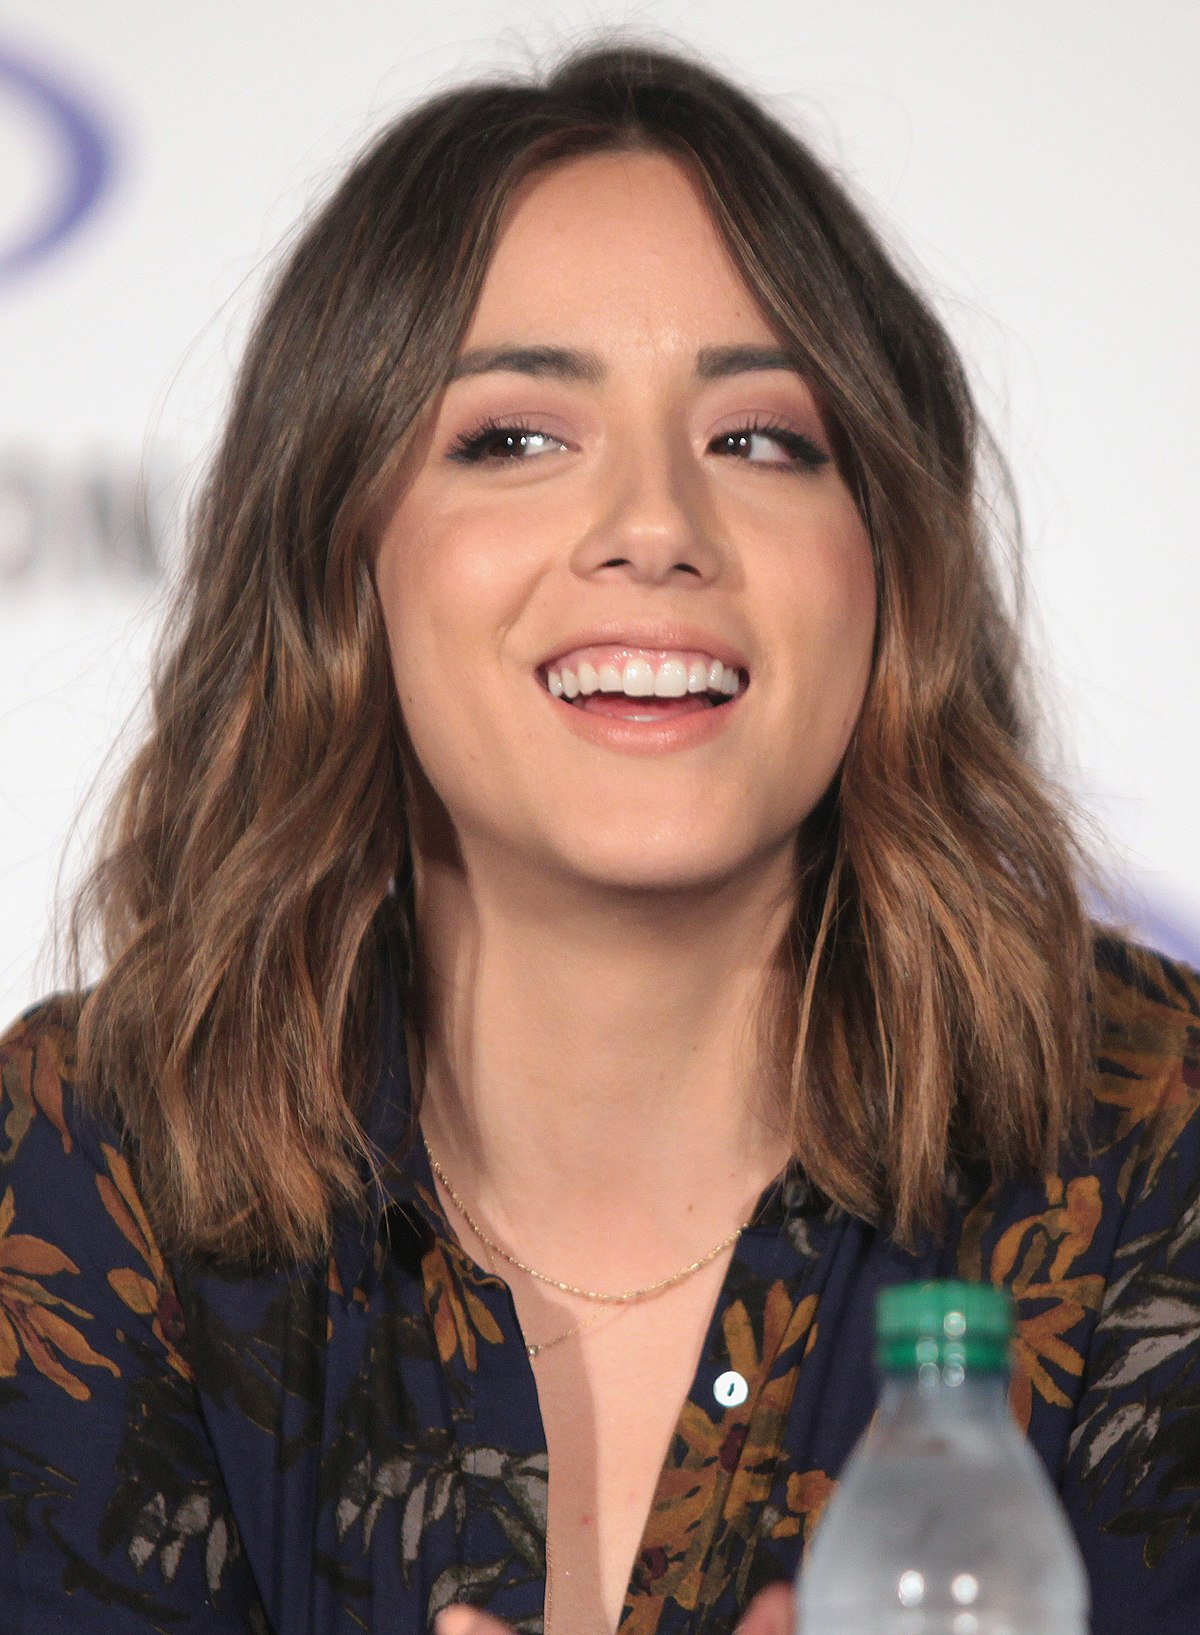 chloe bennet brett daltonchloe bennet gif, chloe bennet photoshoots, chloe bennet вк, chloe bennet walking dead, chloe bennet agents of shield, chloe bennet 2017, chloe bennet site, chloe bennet wallpaper, chloe bennet brett dalton, chloe bennet fan site, chloe bennet png, chloe bennet tattoo, chloe bennet gallery, chloe bennet facebook, chloe bennet listal, chloe bennet tumblr gifs, chloe bennet song, chloe bennet films, chloe bennet fan, chloe bennet wiki